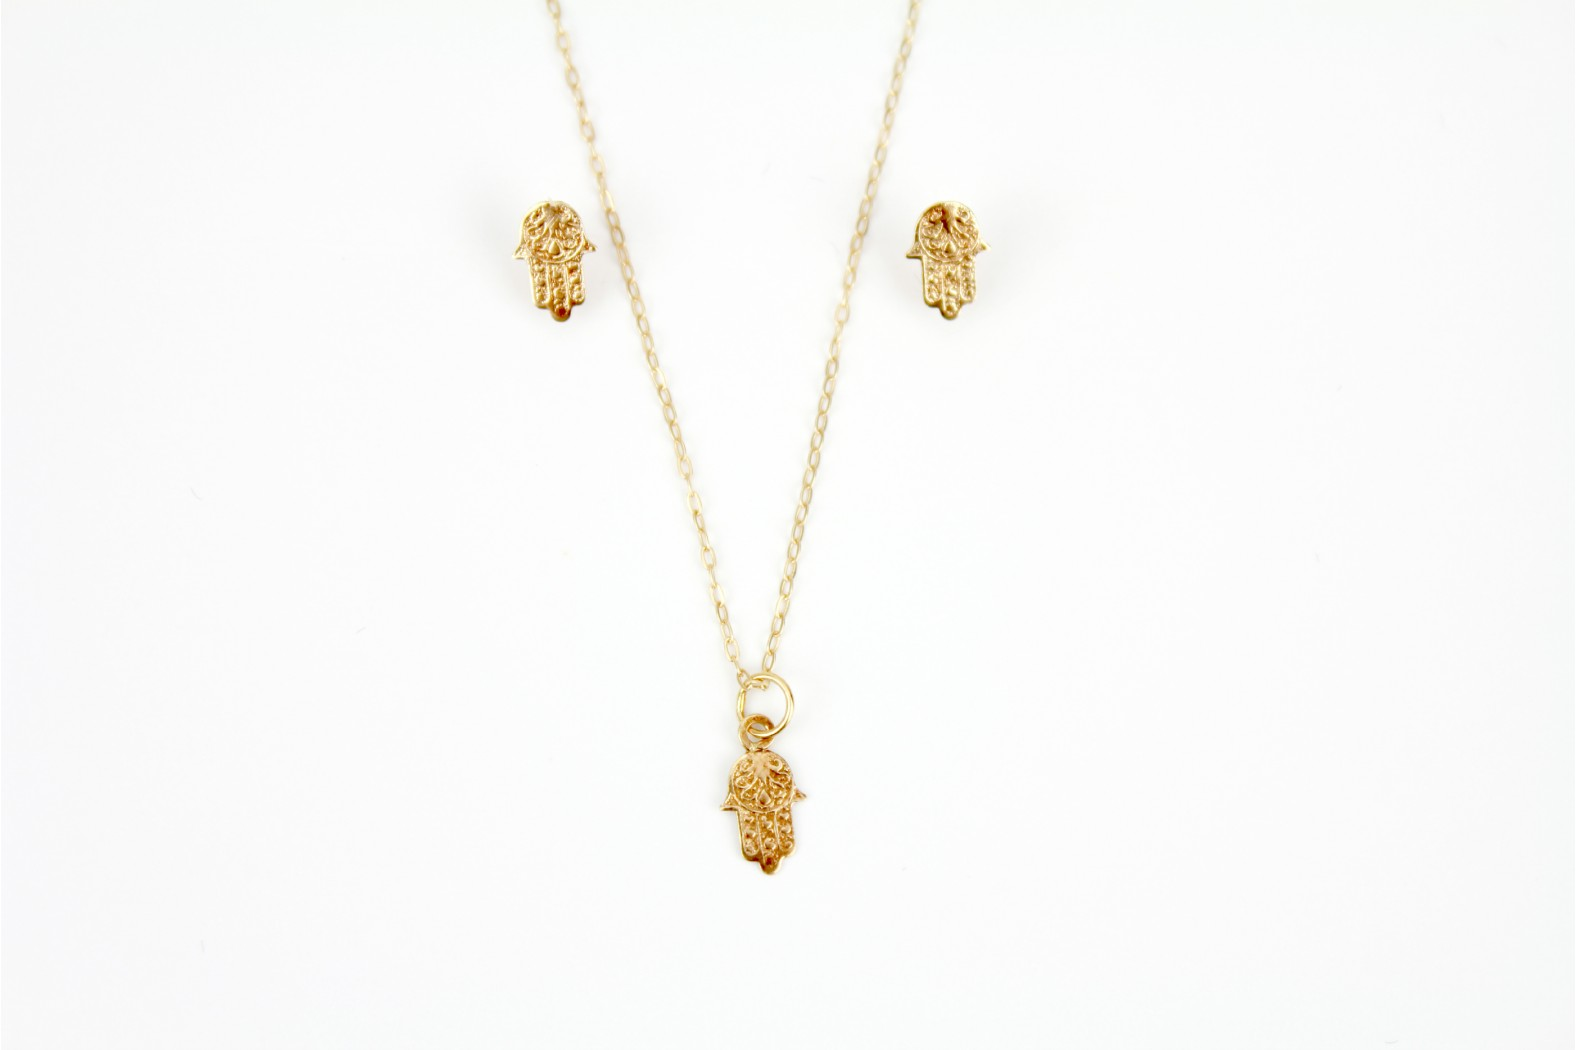 Gorgeous Hamsa or Fatimas hand pendant with complementary stud earrings on matching 18inch or 45cm chain